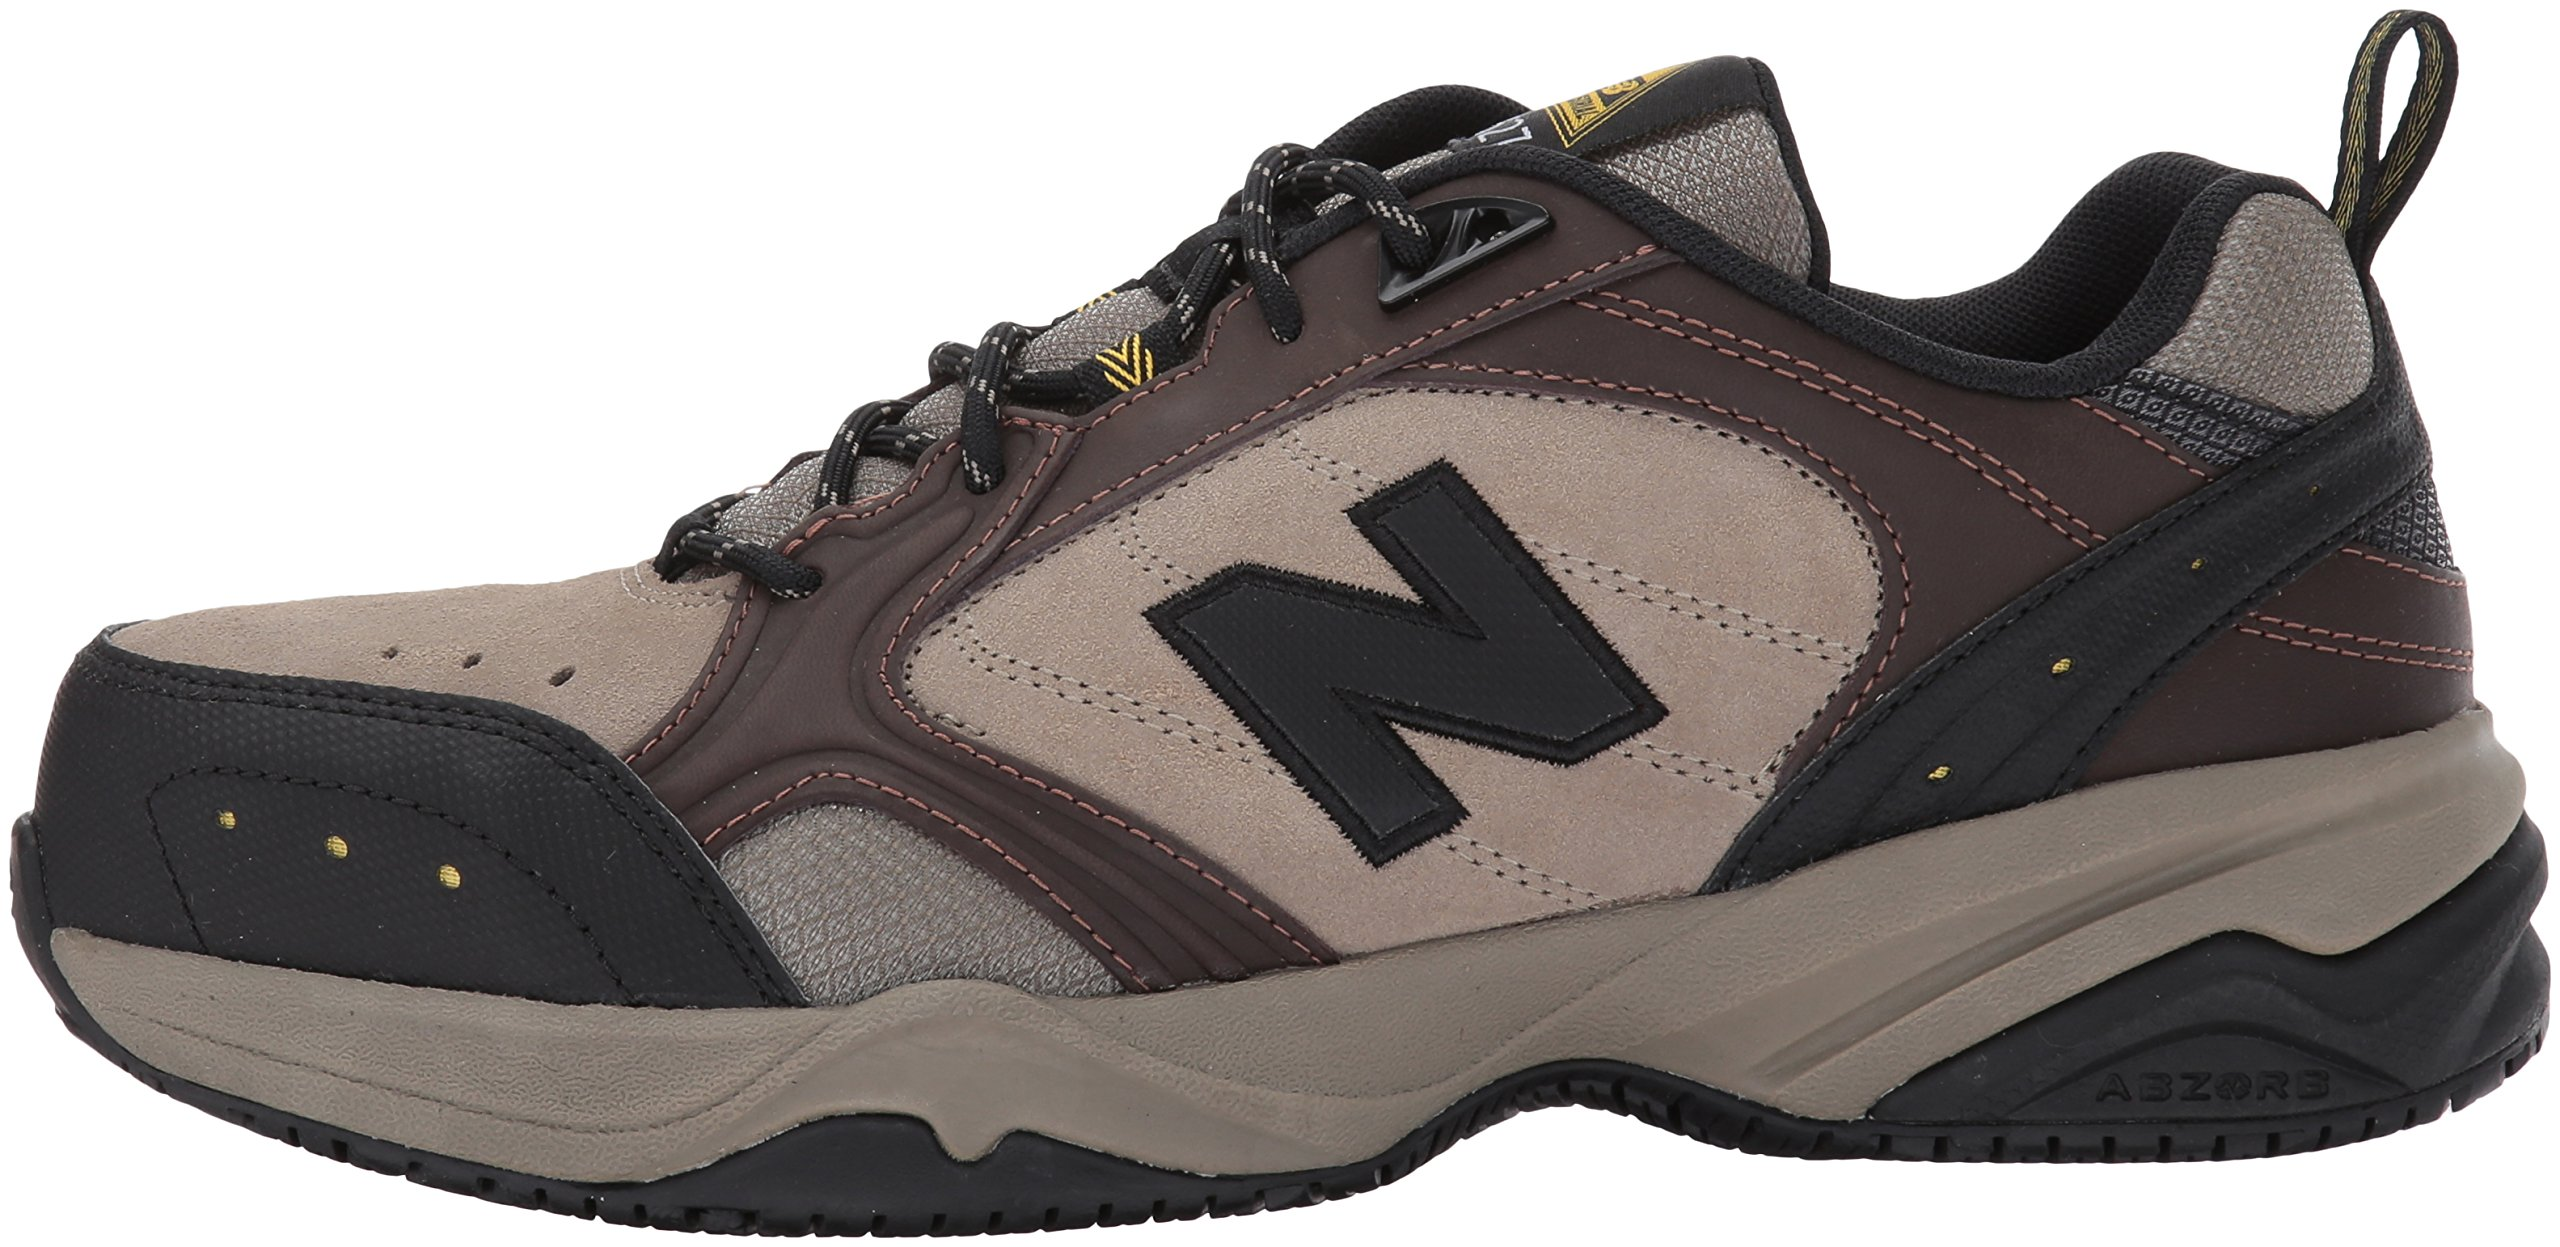 New Balance Men's MID627 Steel-Toe Work Shoe,Brown,18 4E US by New Balance (Image #5)